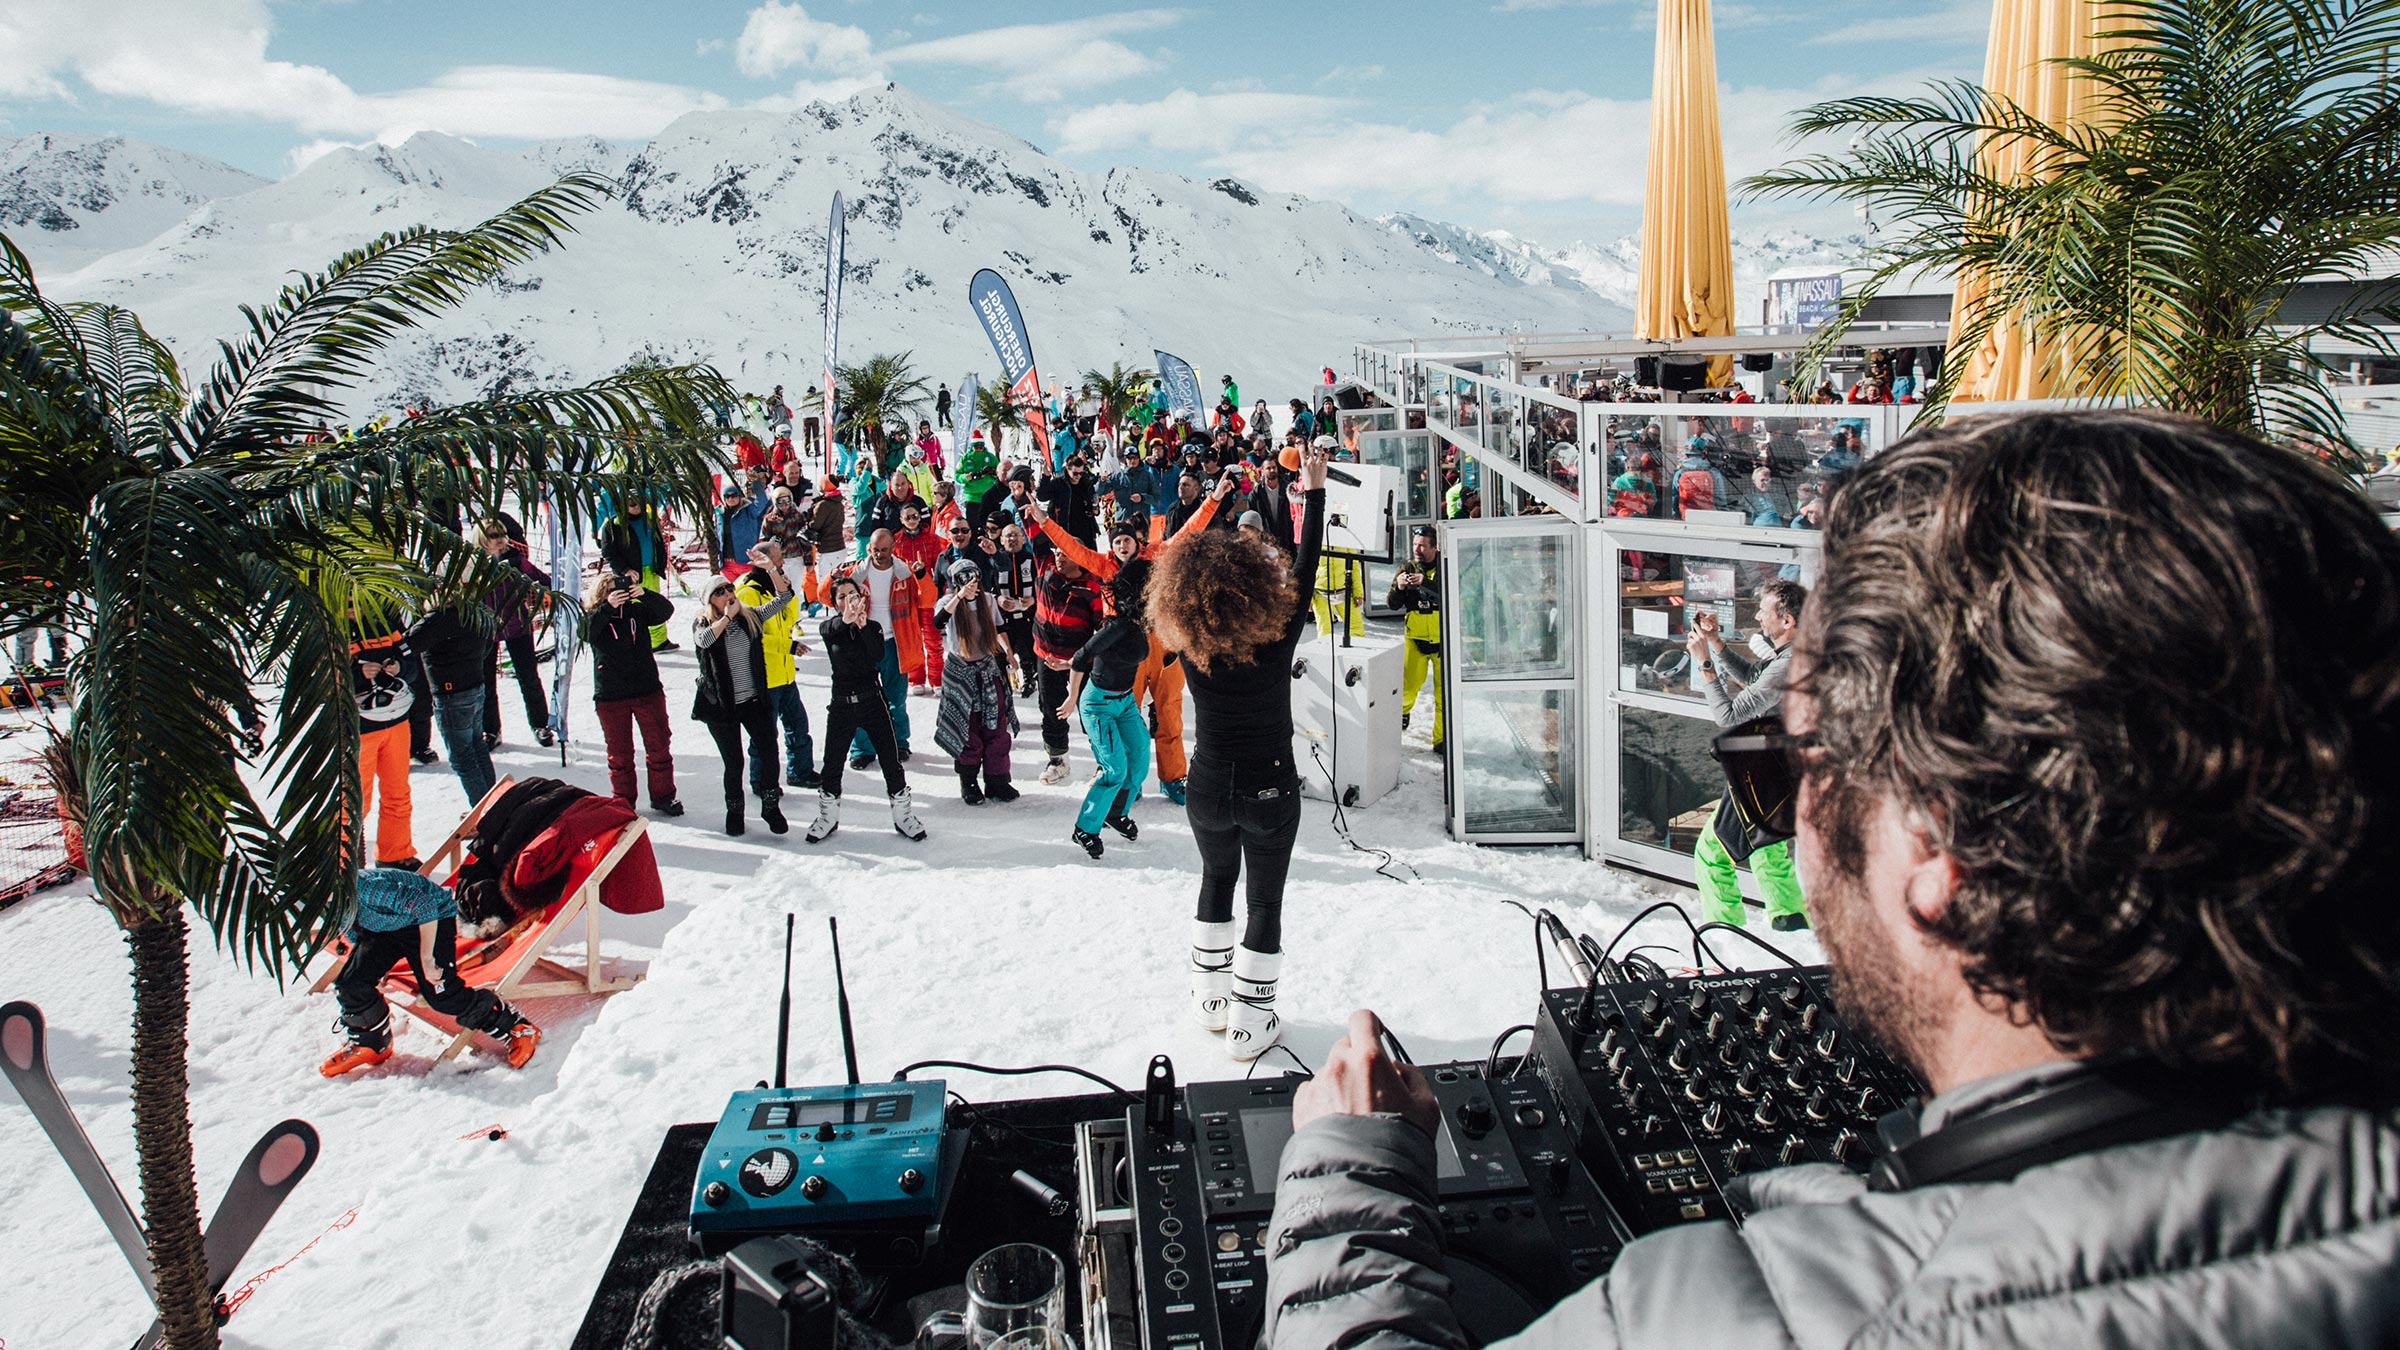 Once doesn't count: Nassau Beach Club Ibiza returns to Obergurgl-Hochgurgl for its 2nd guest performance